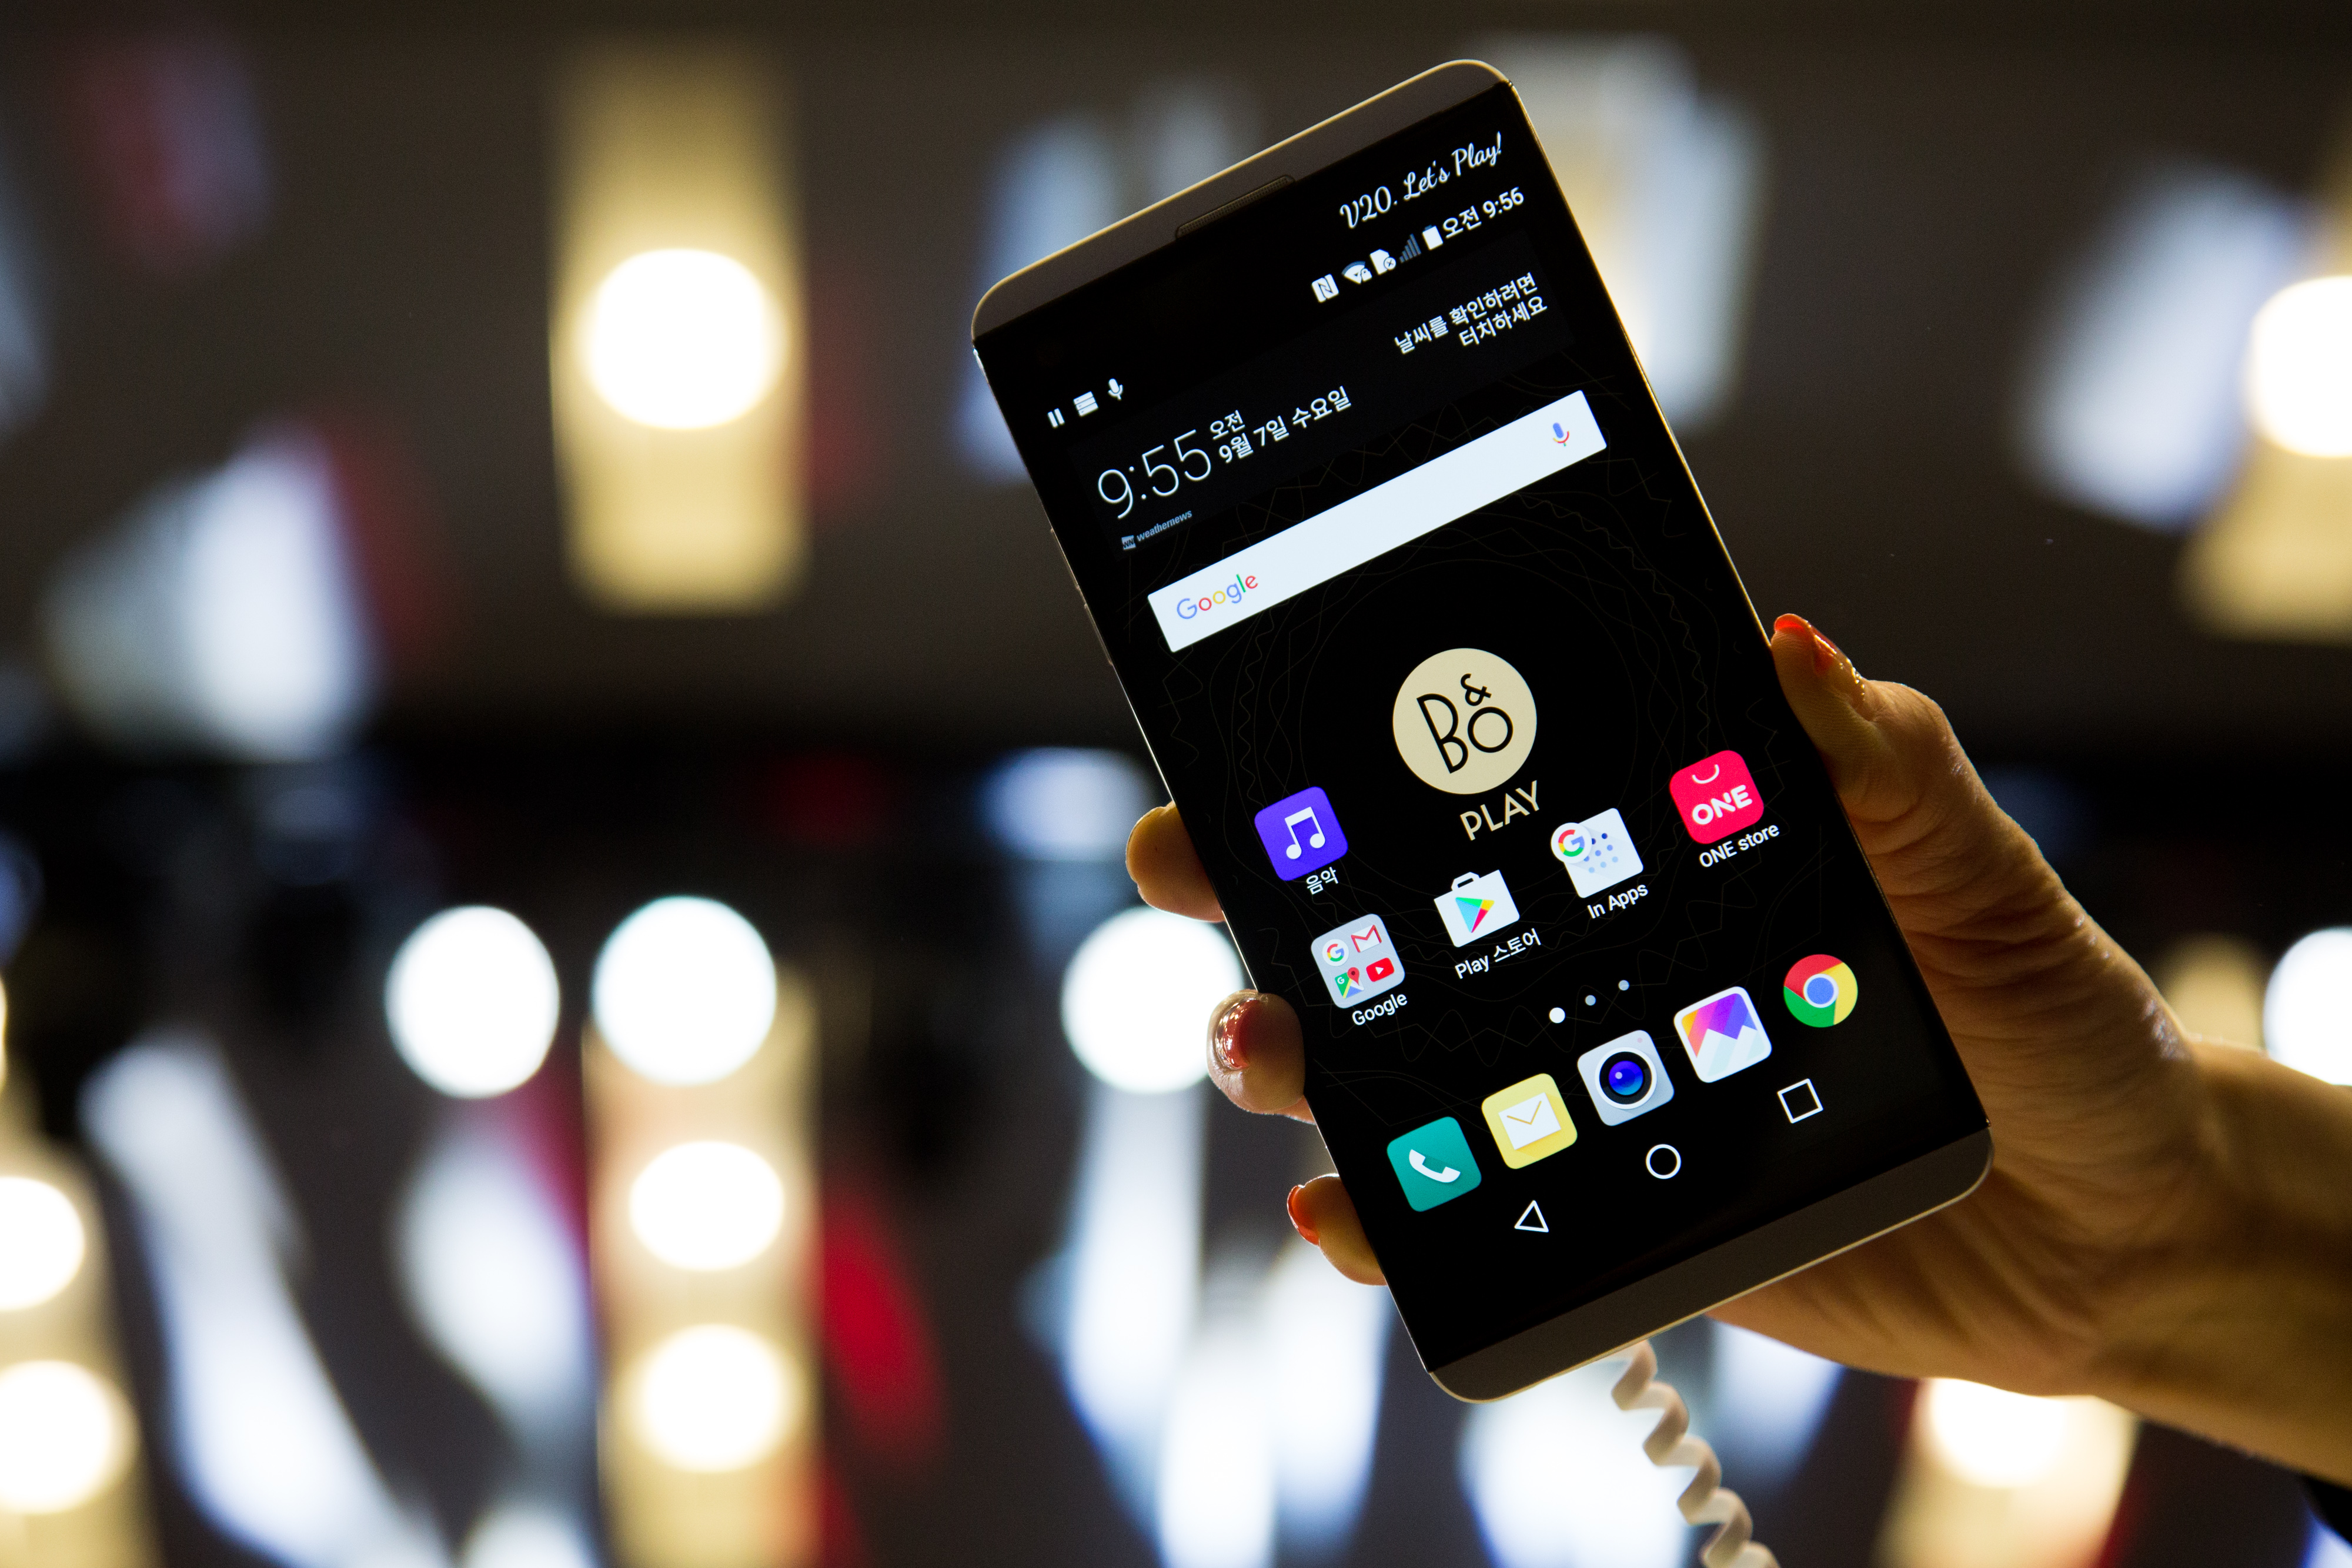 An LG Electronics Inc. V20 smartphone is displayed during a launch event in Seoul, South Korea, on Sept. 7, 2016.